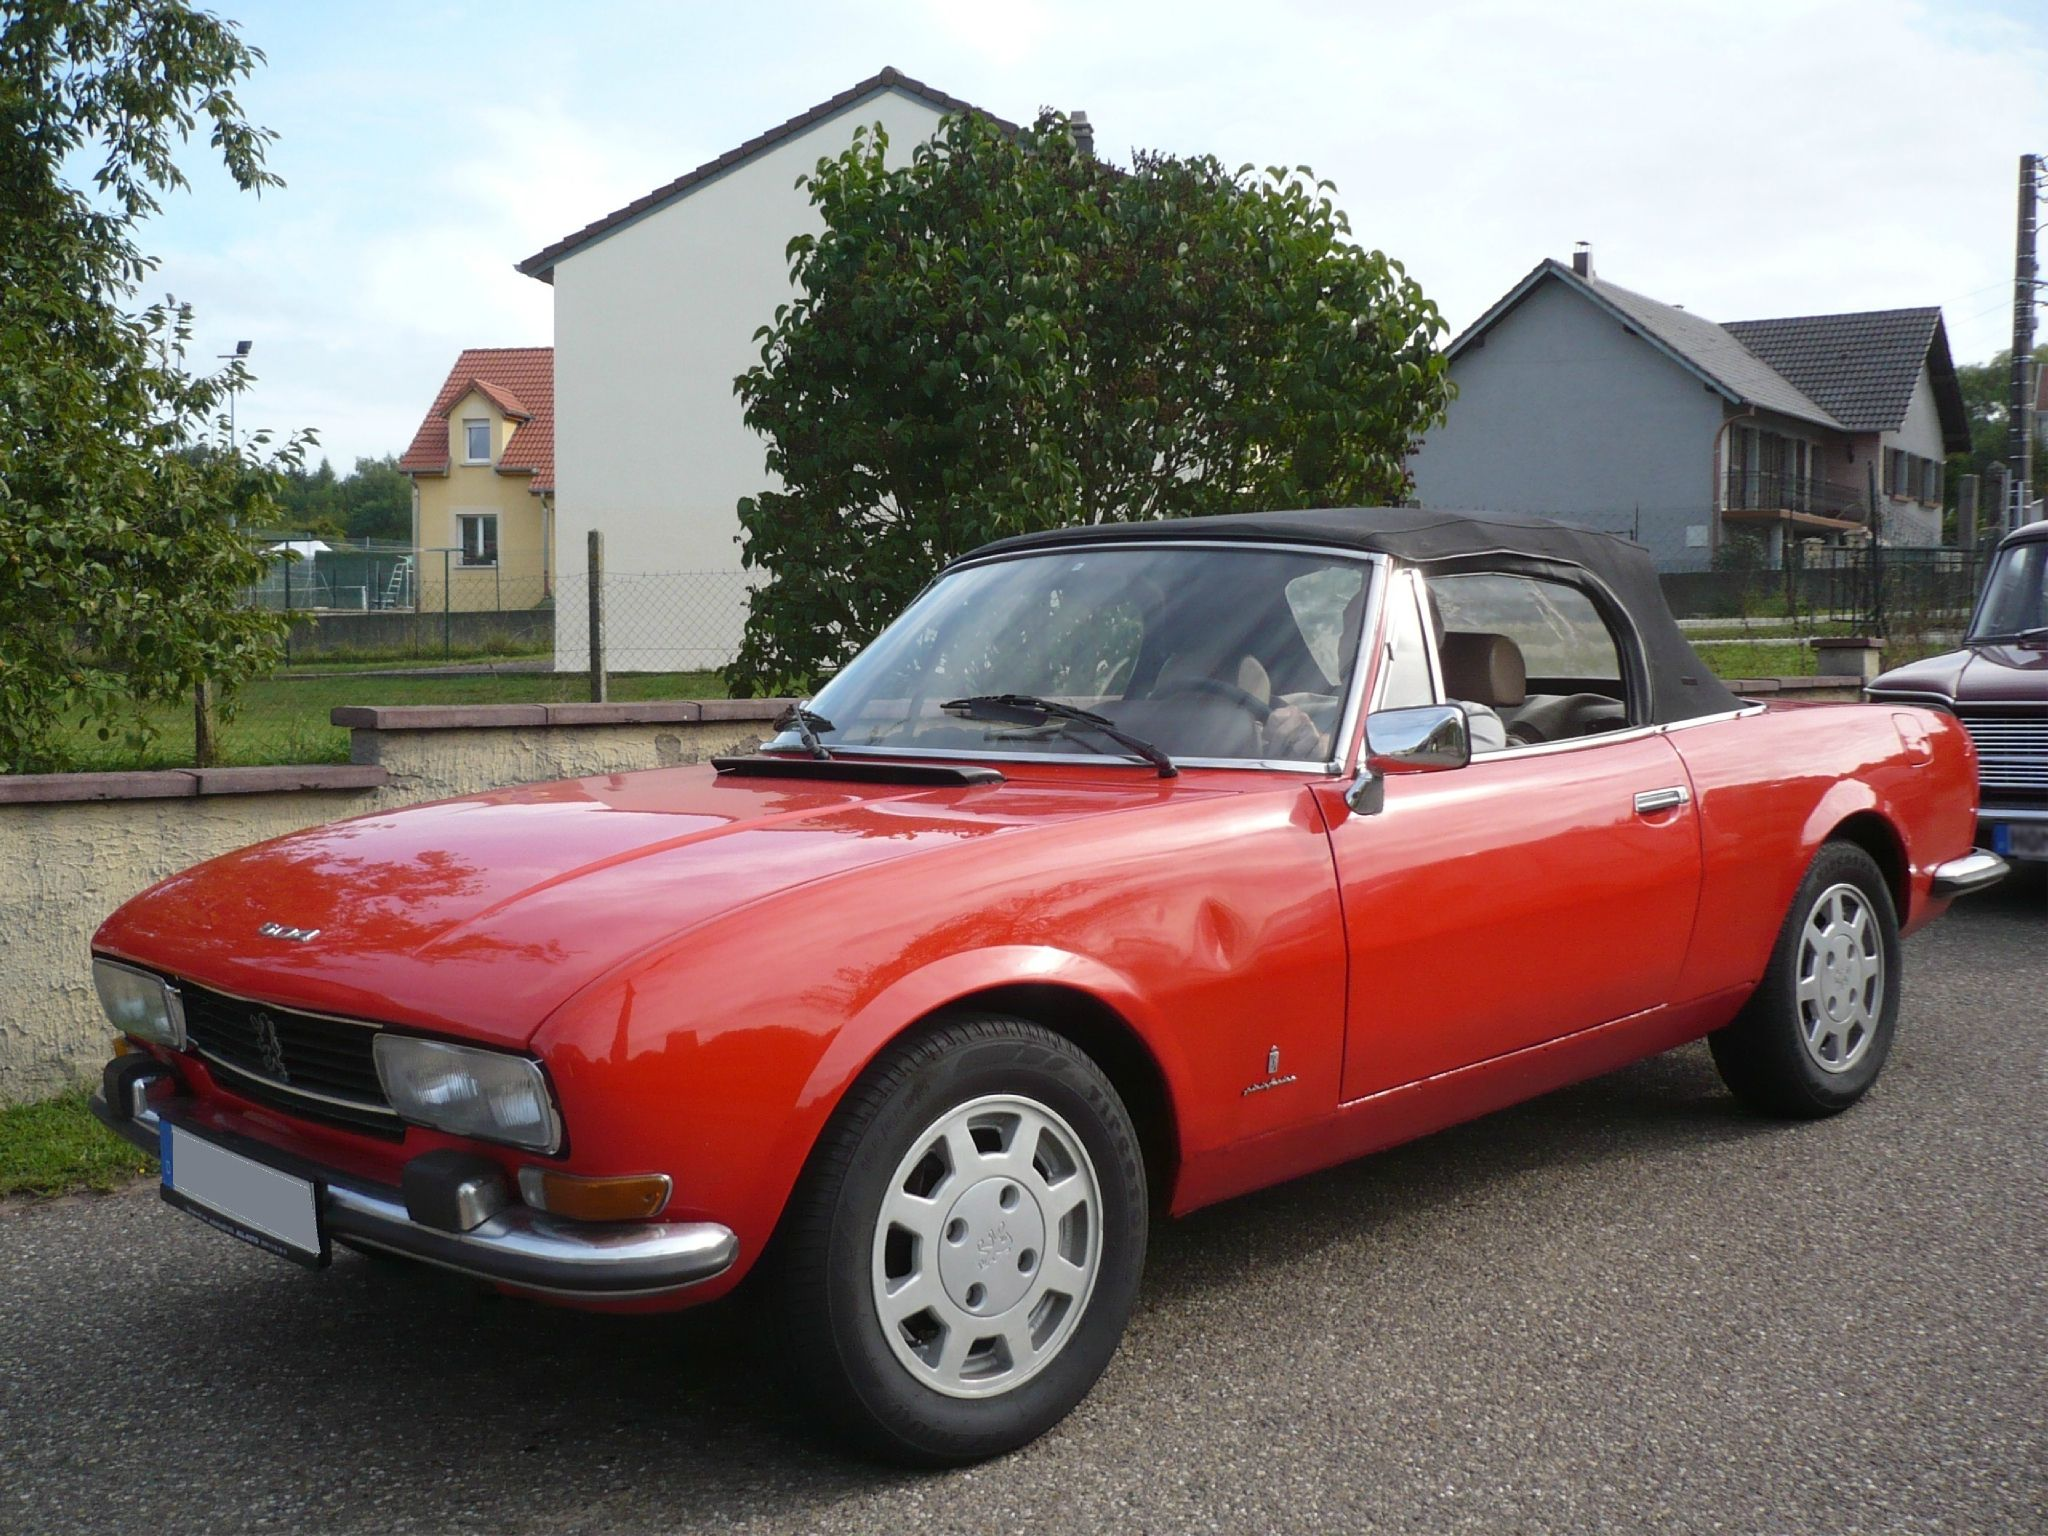 peugeot 504 automatique cabriolet voitures pinterest peugeot 504 cabriolet et peugeot. Black Bedroom Furniture Sets. Home Design Ideas